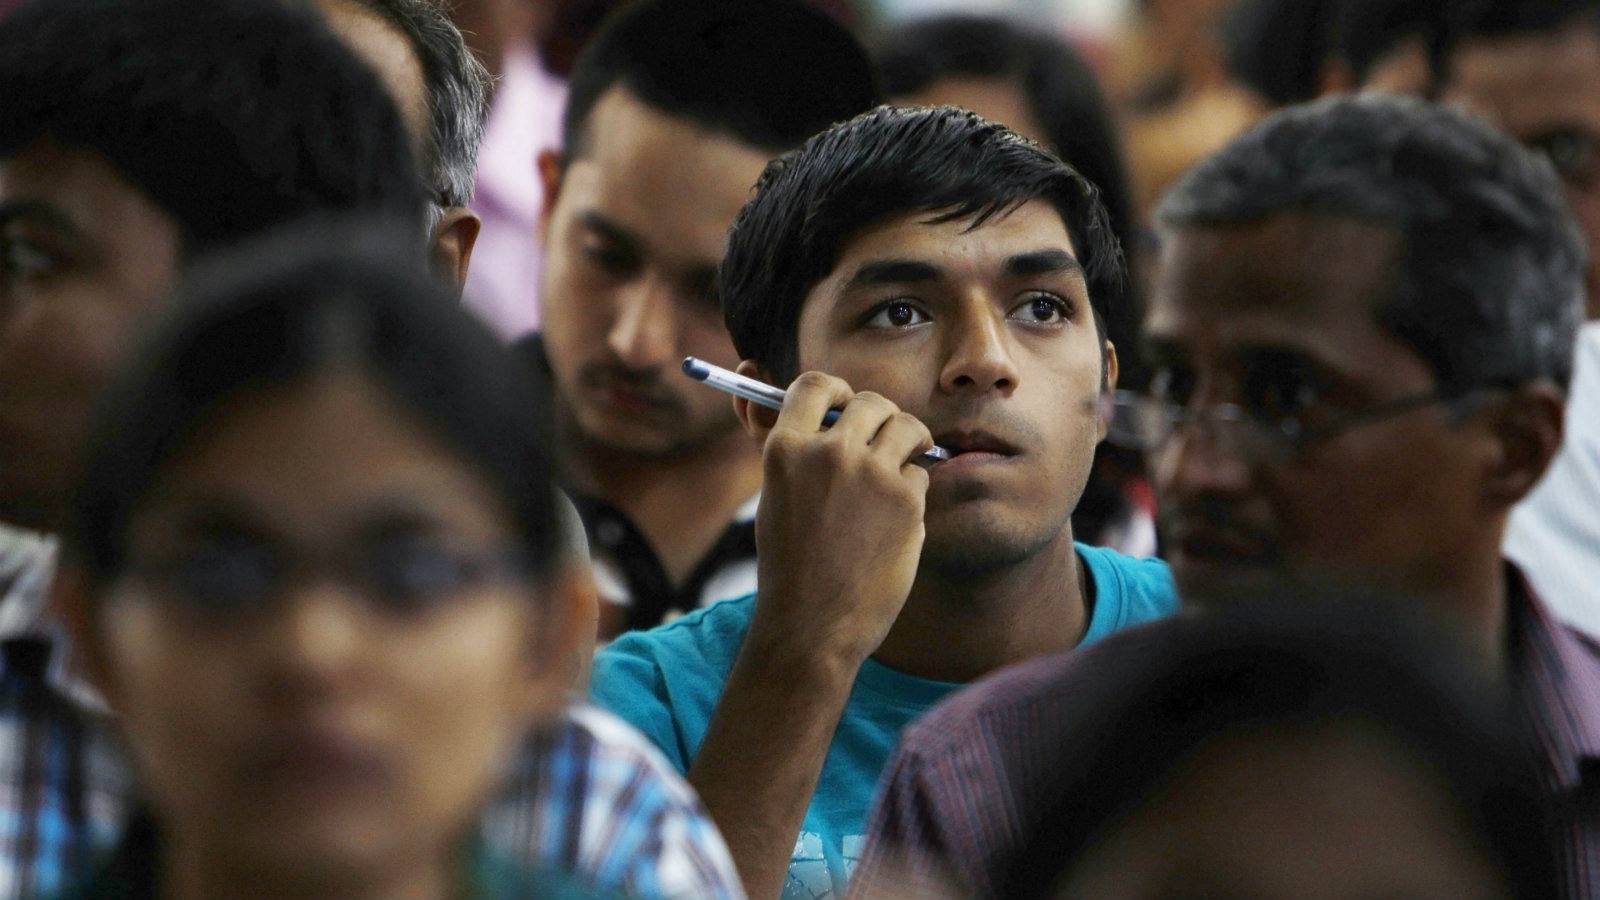 A successful candidate watches a screen displaying alloted seats to students as he waits eagerly to secure his engineering seat, after qualifying the Common Entrance Test, in Bangalore, India, Thursday, July 7, 2011. The Common Entrance Test is a competitive exam conducted for the admission of students to the first year or first semester of full time courses in medical, dental and engineering courses in professional colleges.